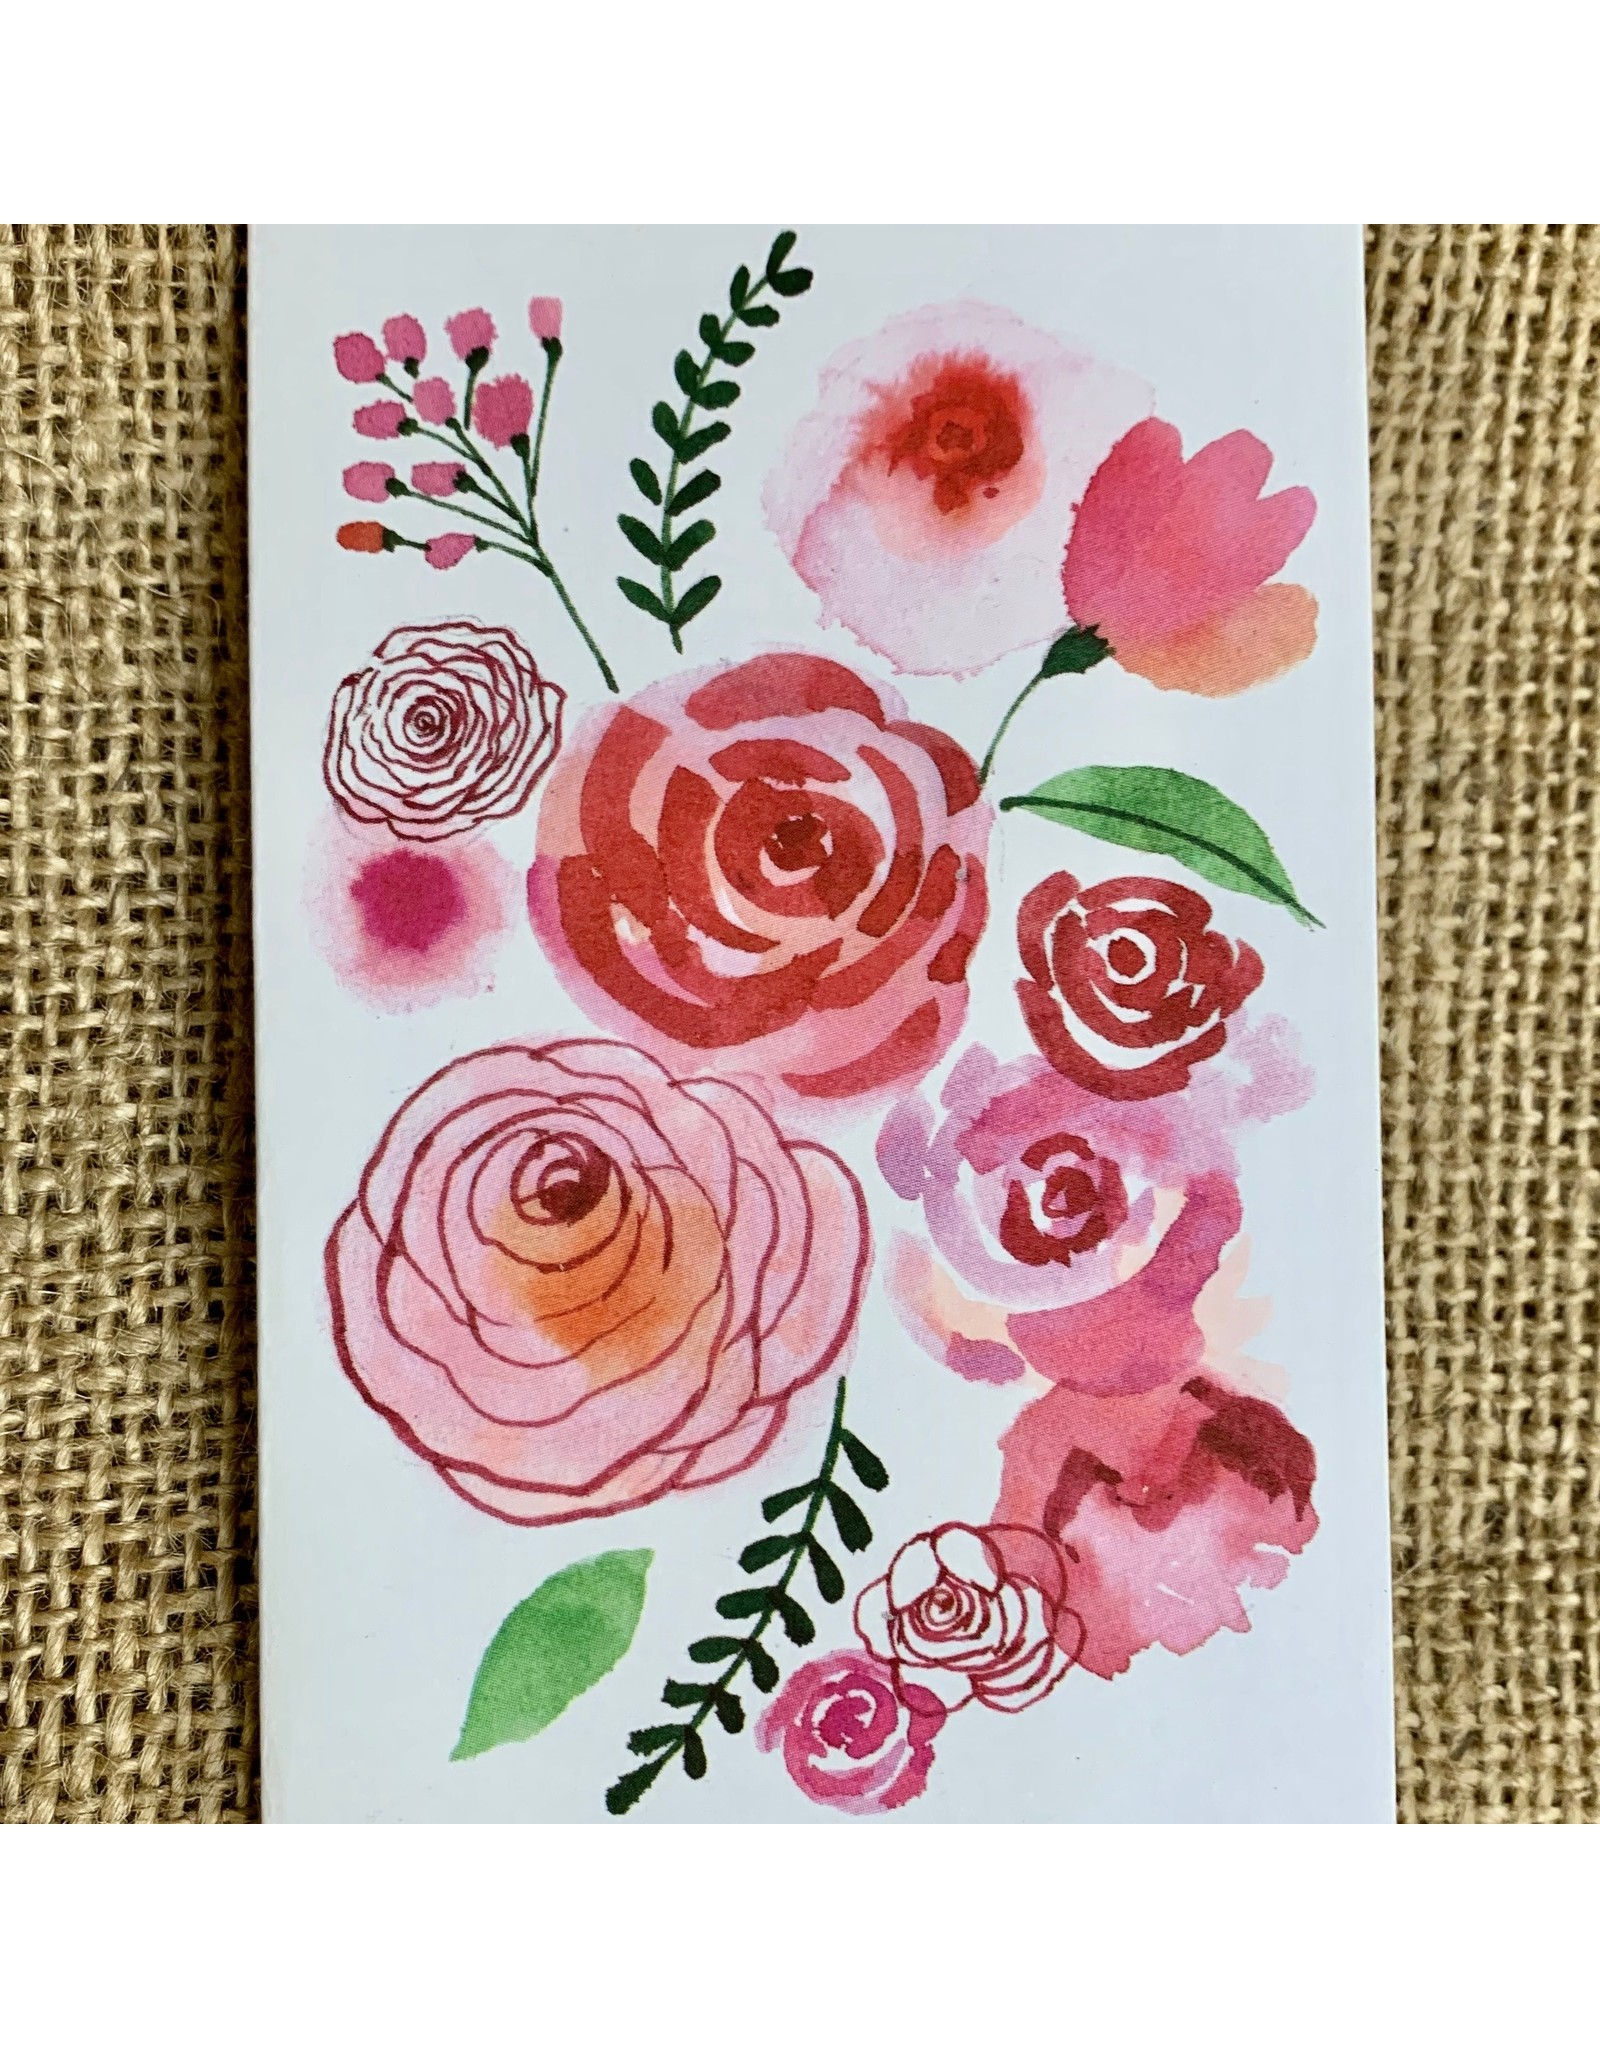 Ten Thousand Villages Beautiful Brights Floral Greeting Cards (set of 2)